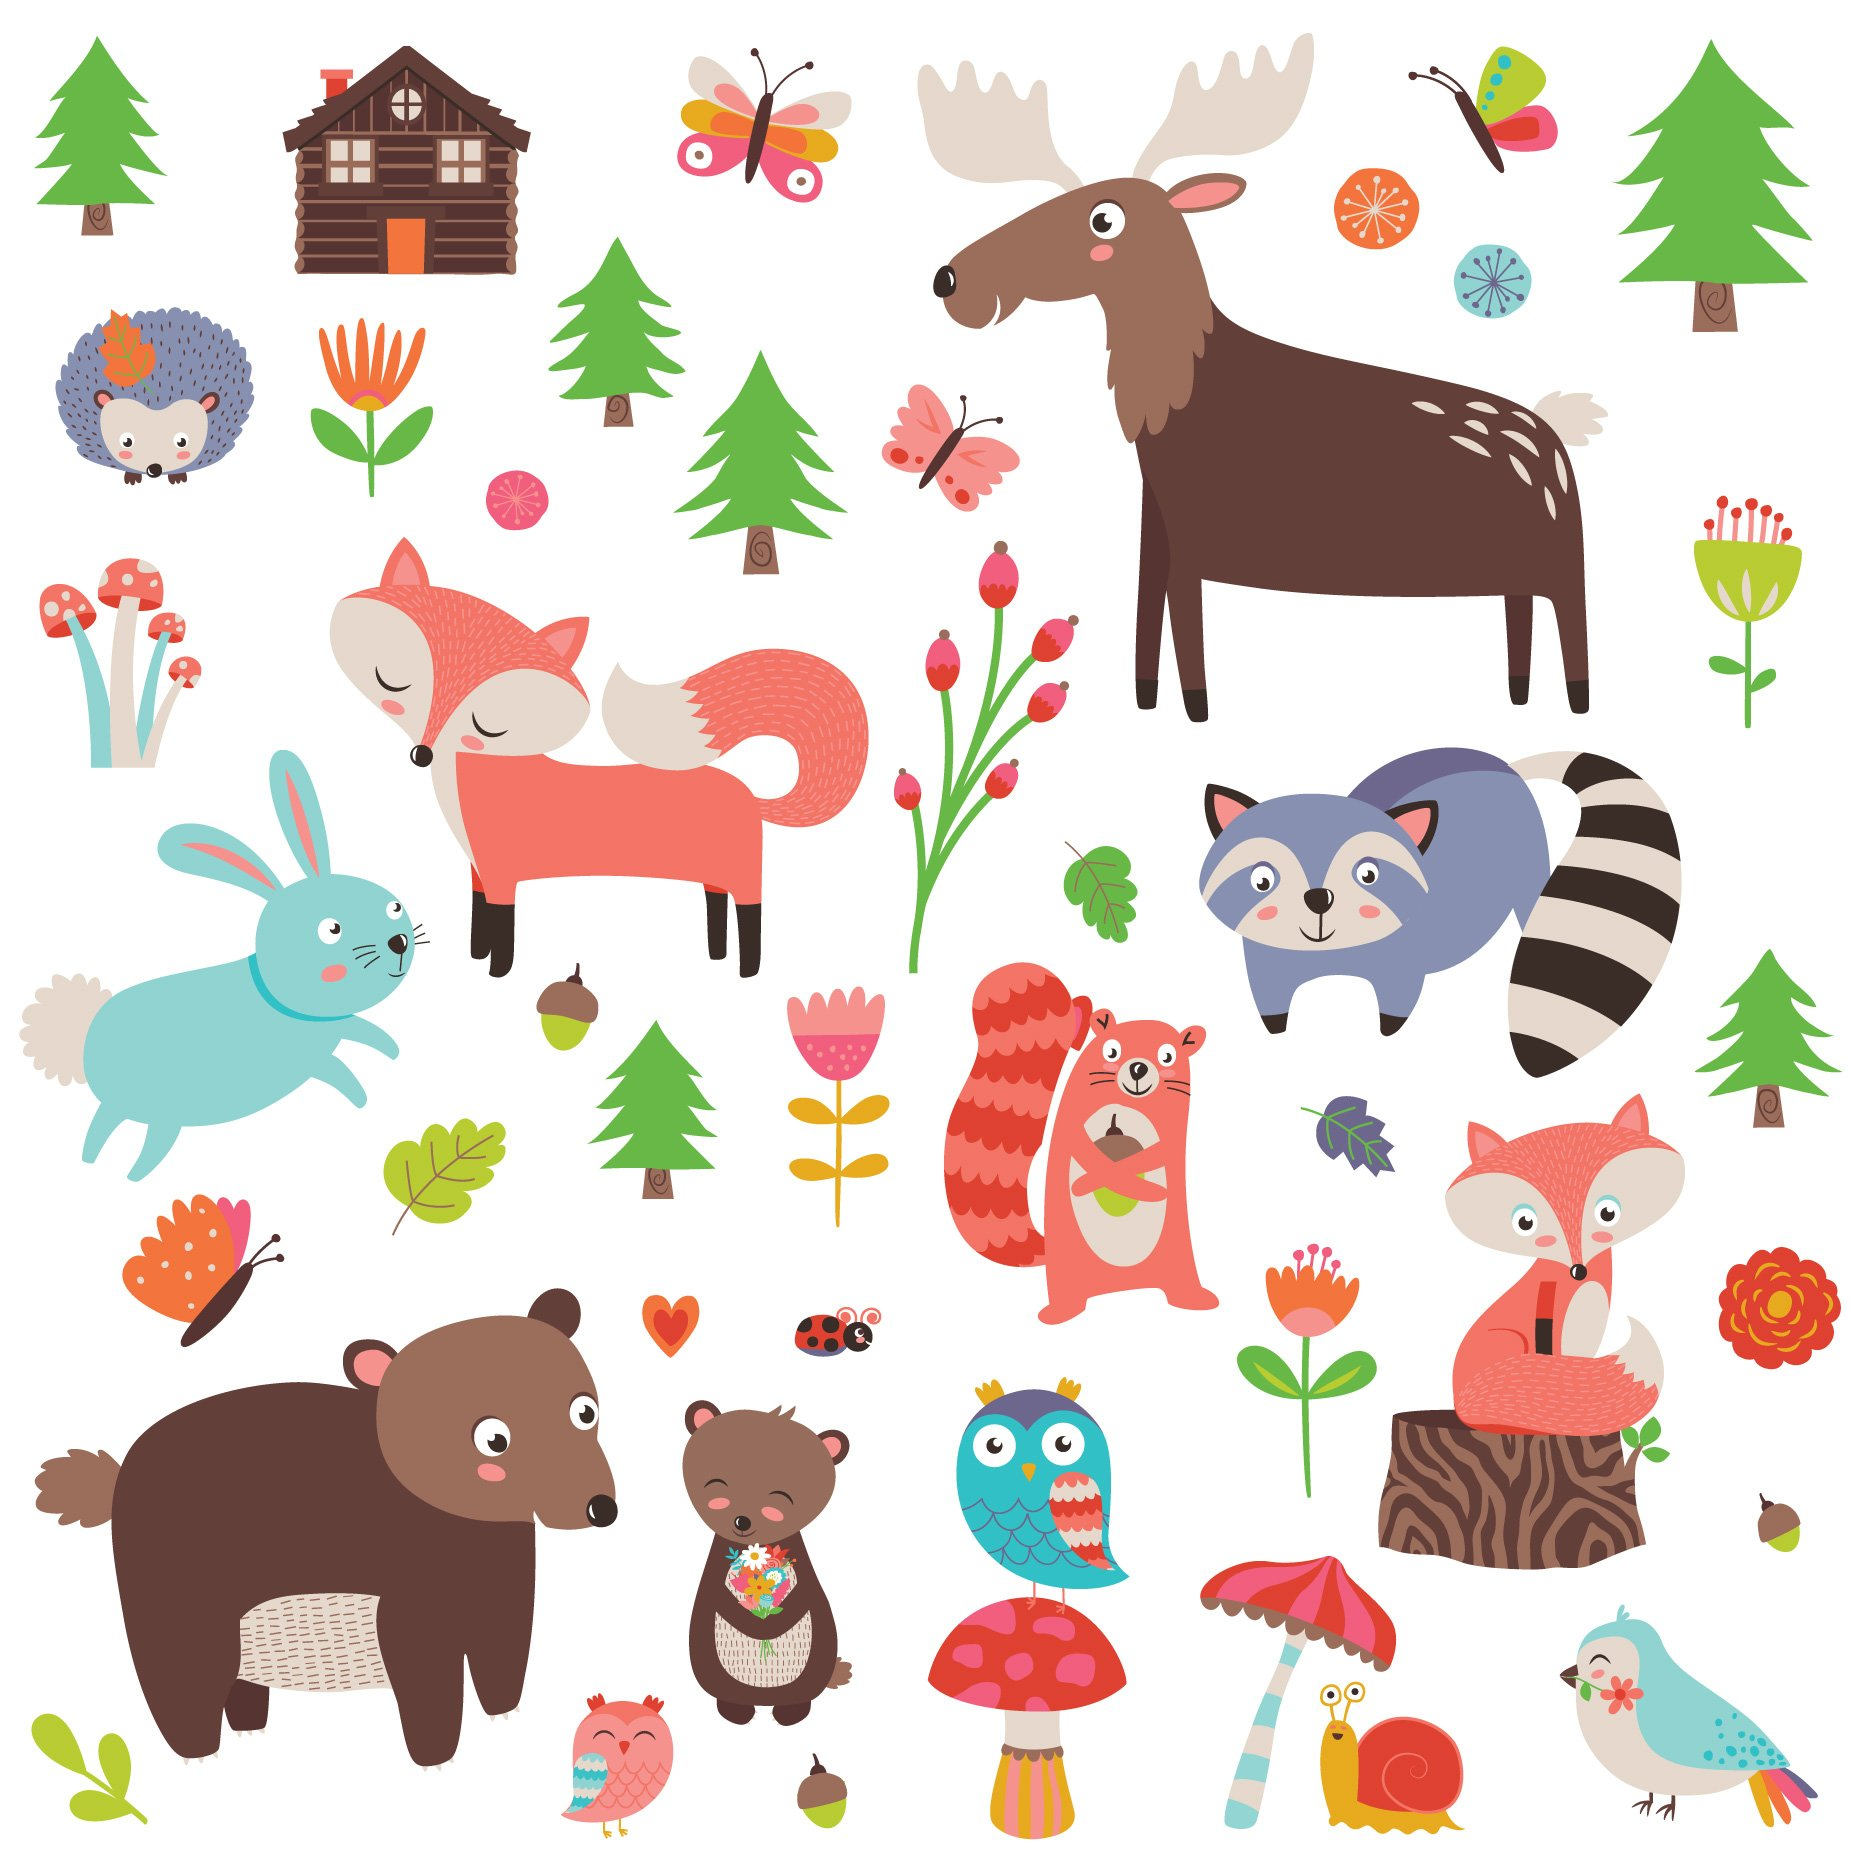 Woodland Animals Decorative Peel & Stick Wall Art Sticker Decals for Kids Room or Nursery